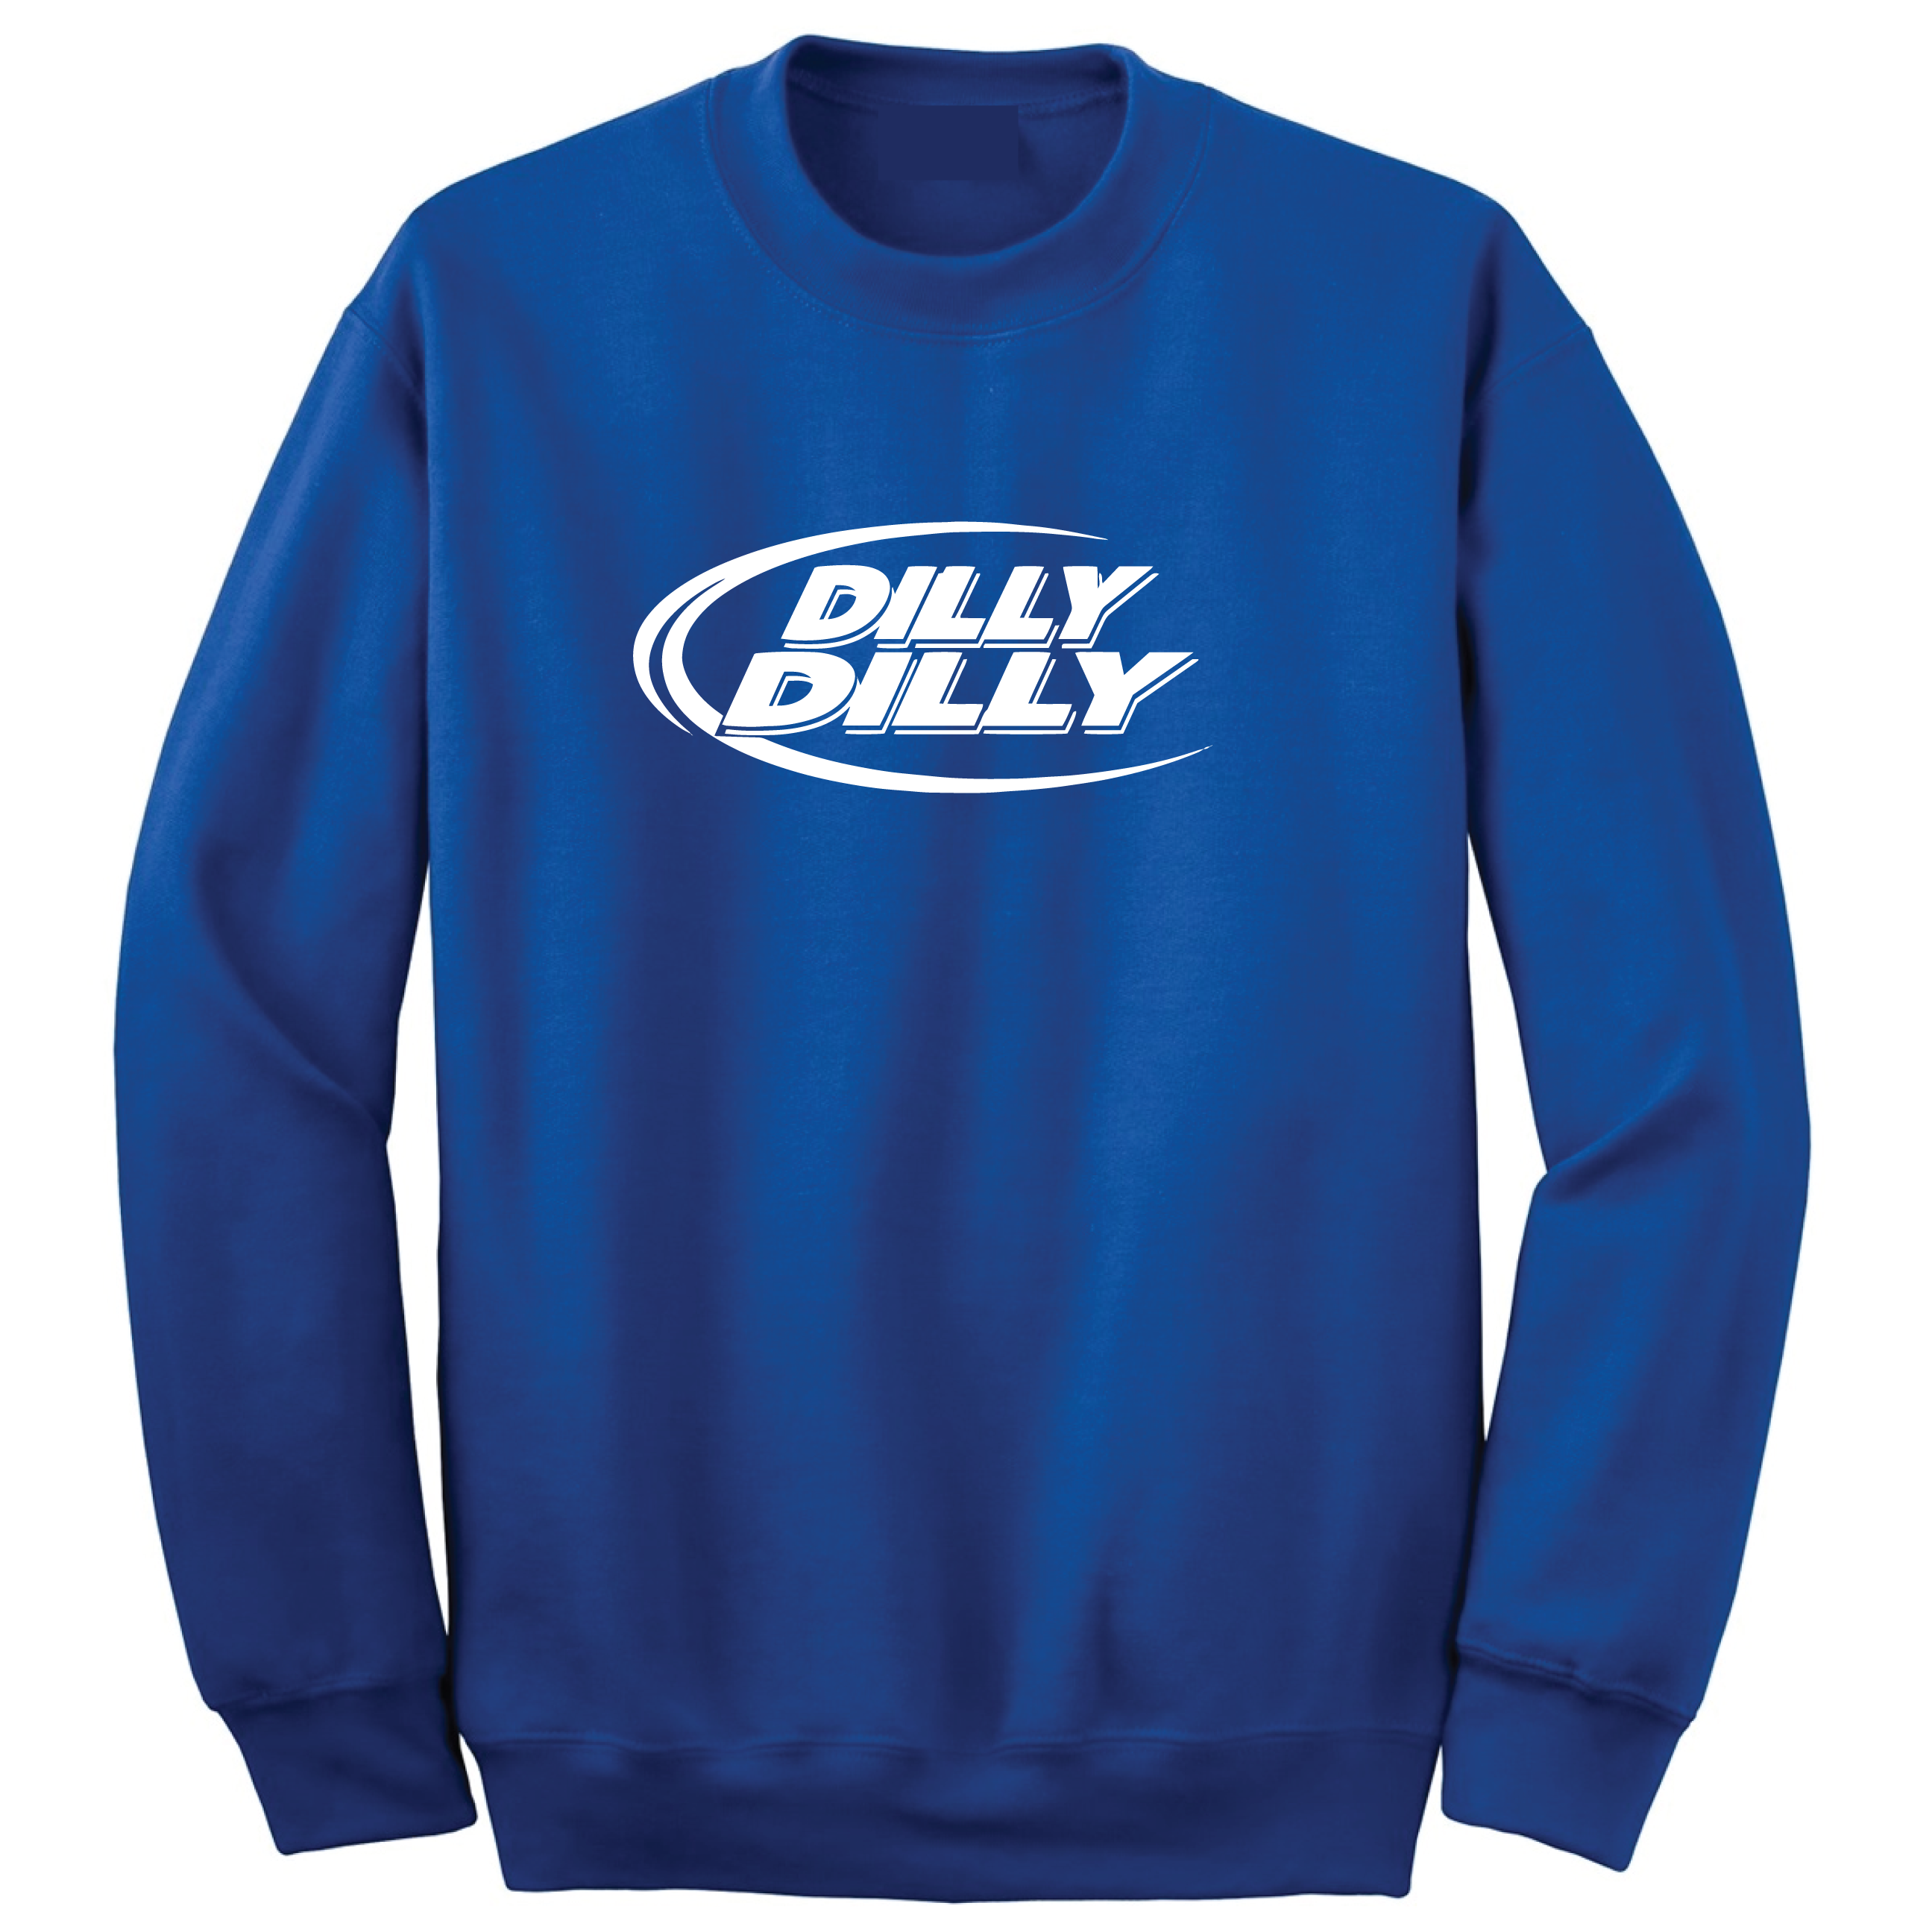 71648011 Dilly Dilly Shirt